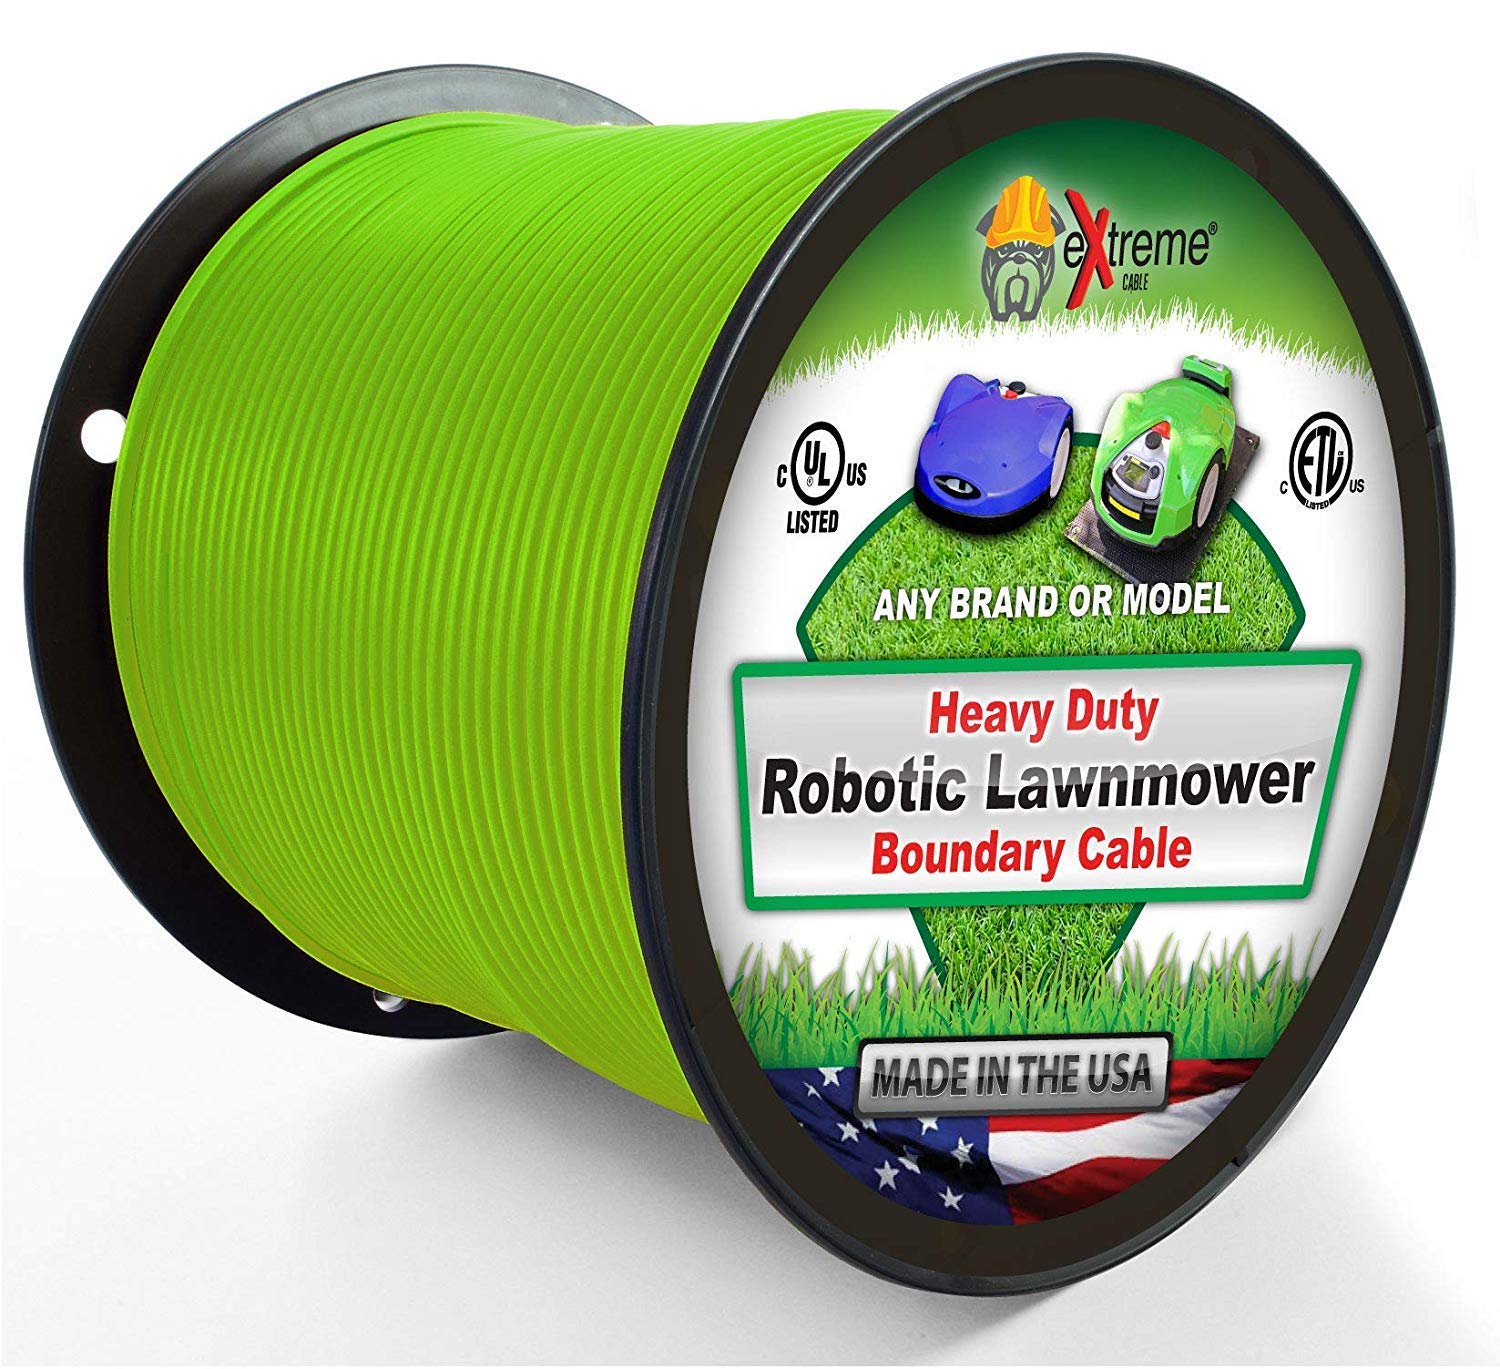 Robotic Lawnmower Wire 14 Gauge (Extra Thick Jacket) 1000 Ft - Heavy Duty Pure Solid Copper Core Automatic Mower Boundary Wire - Compatible with All Robotic Lawnmowers and Electric Dog Fences by Extreme Dog Fence